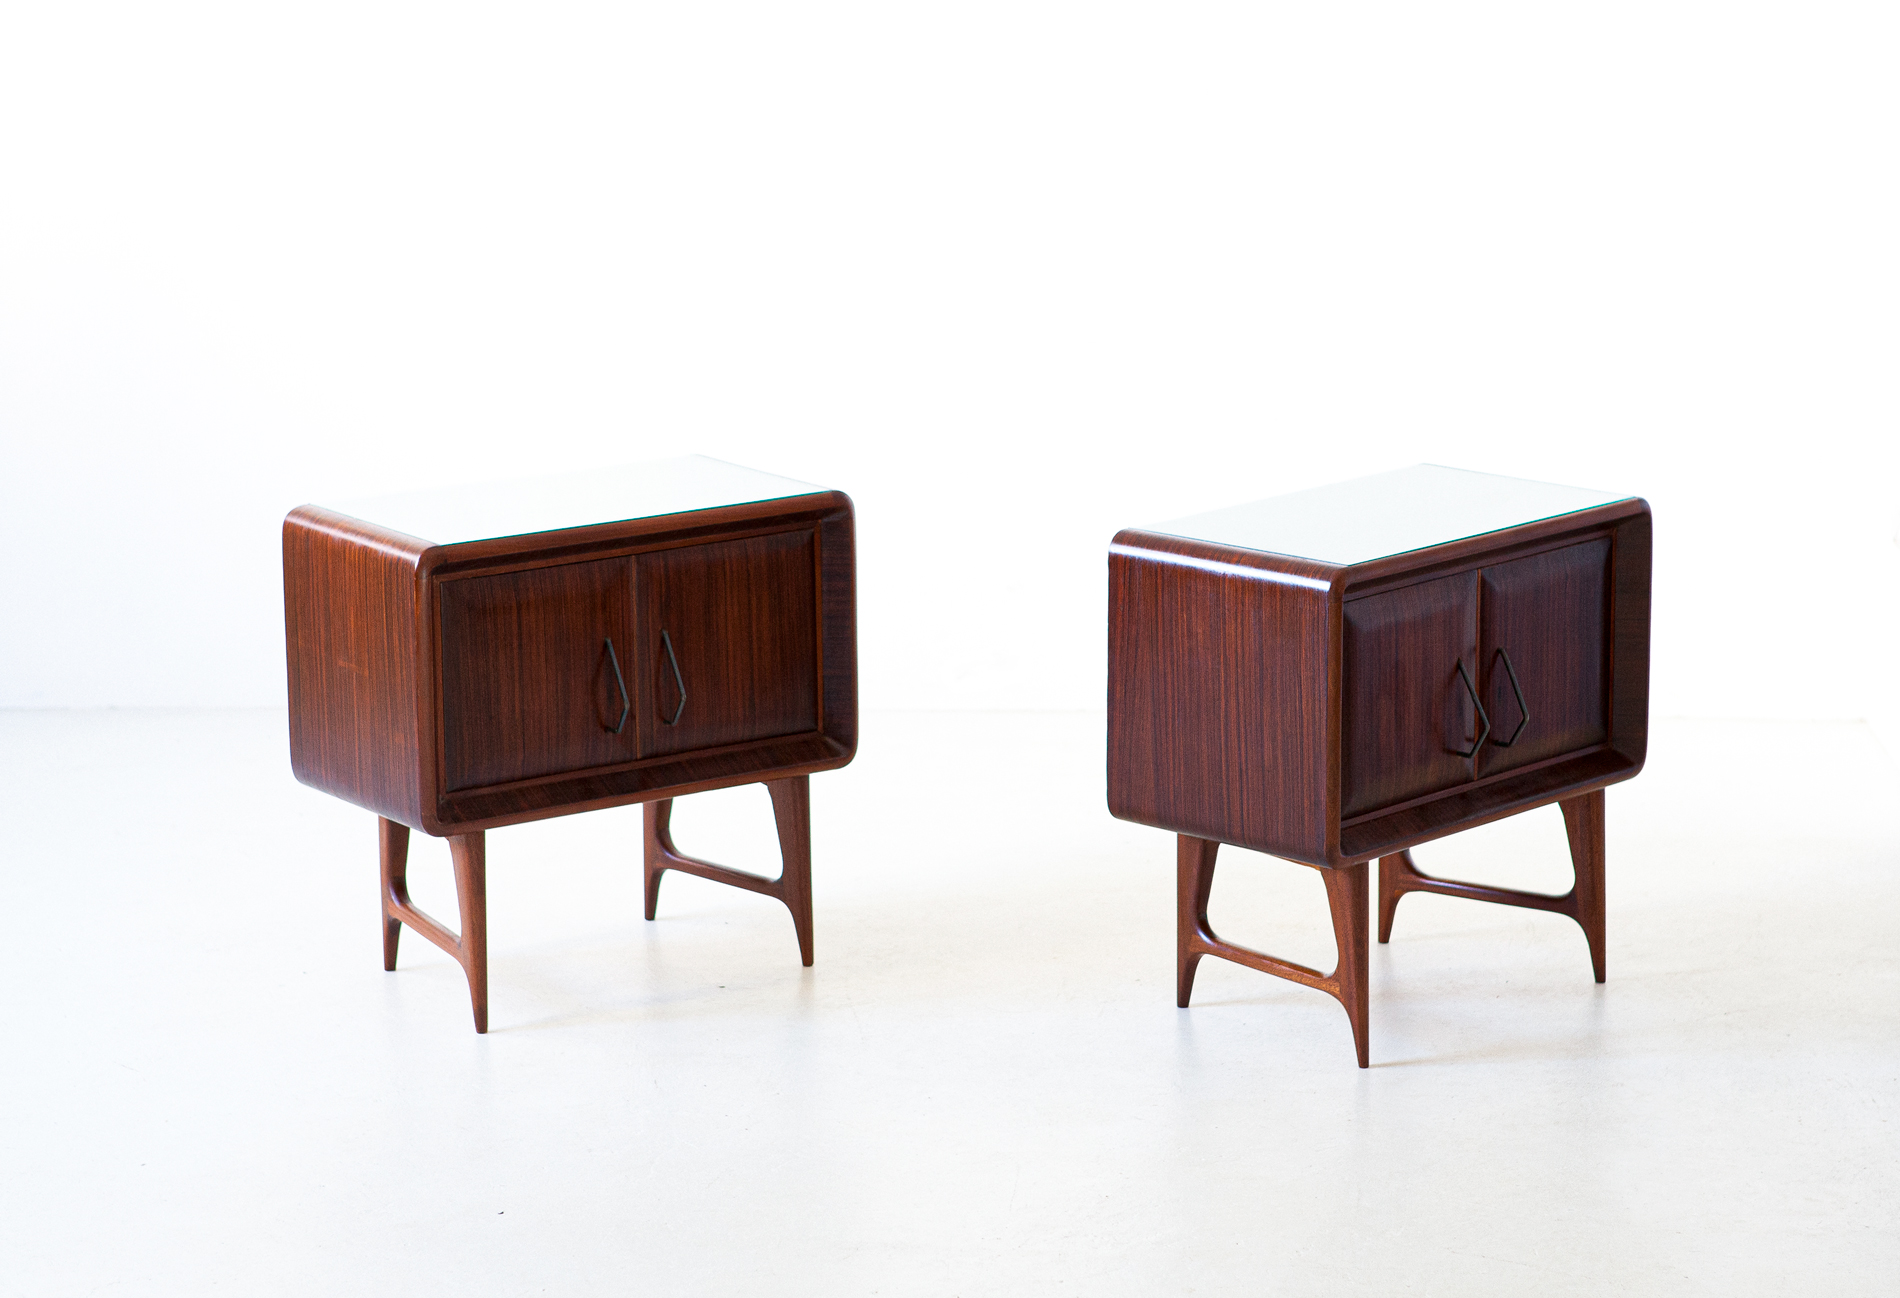 1950s-italian-rosewood-bedside-tables-with-green-glass-top-2-bt83